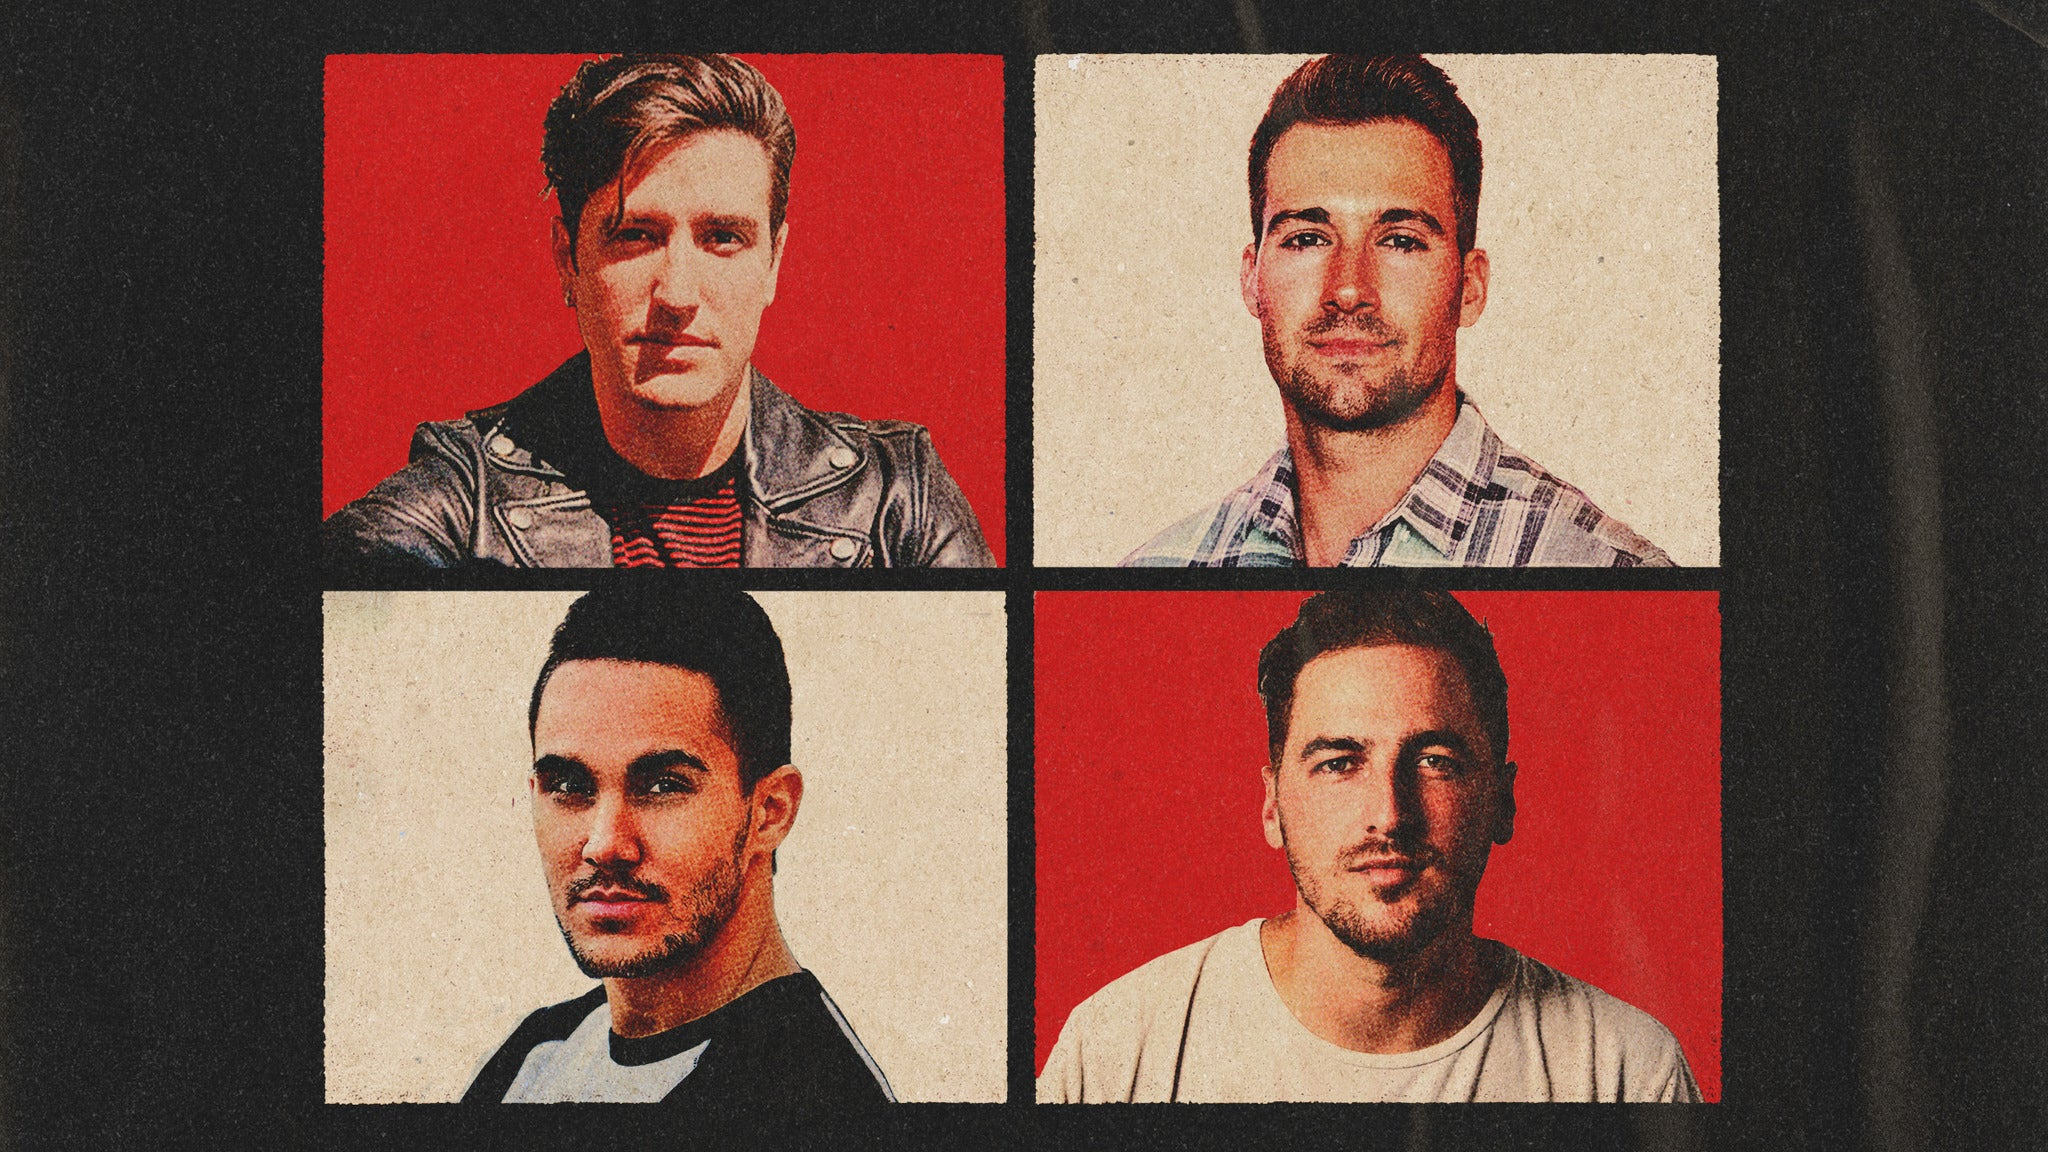 Big Time Rush presale code for early tickets in New York